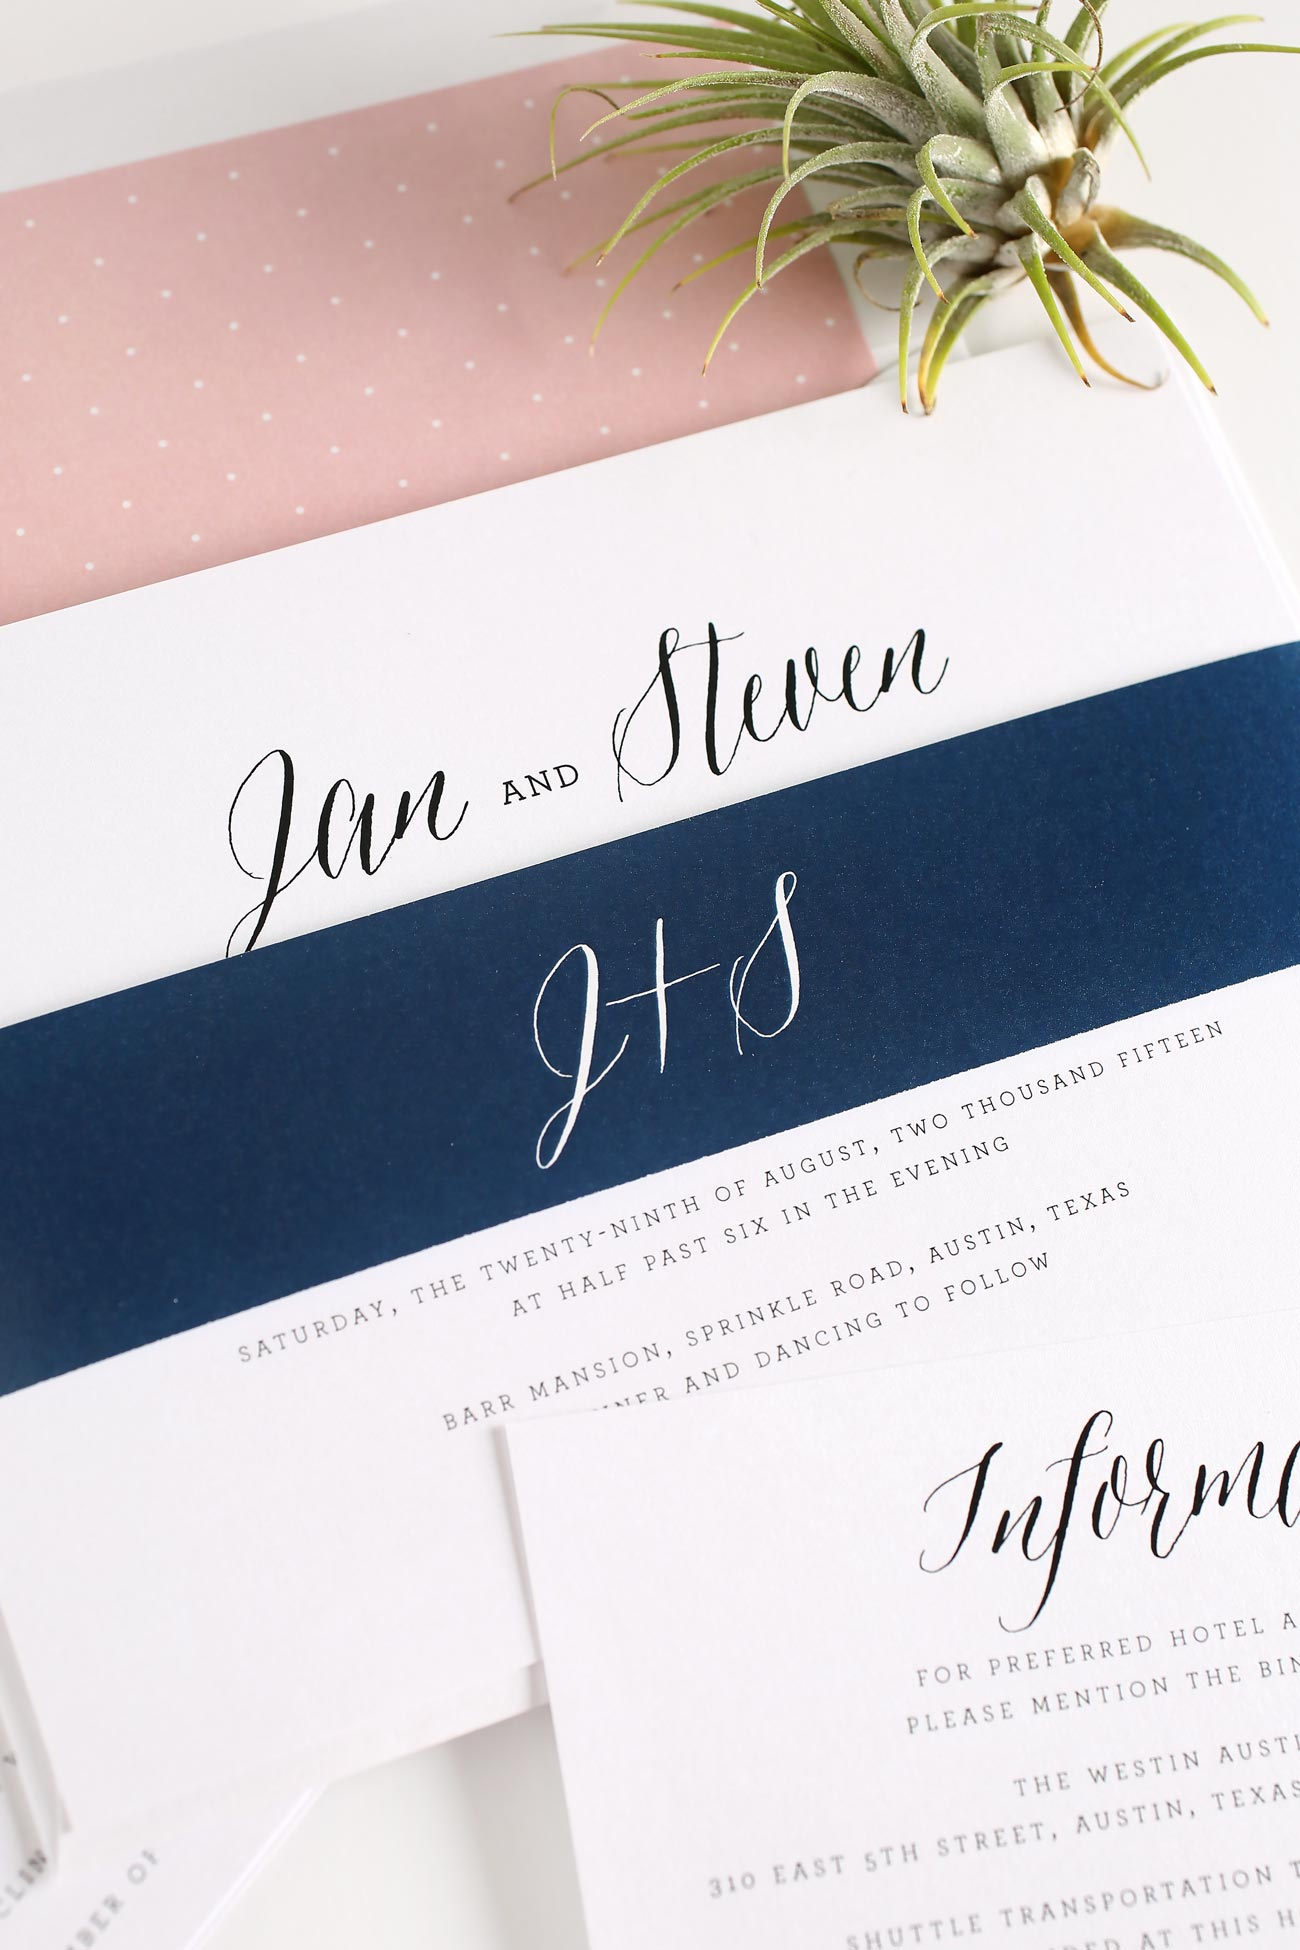 Romantic wedding invitations in navy and blush